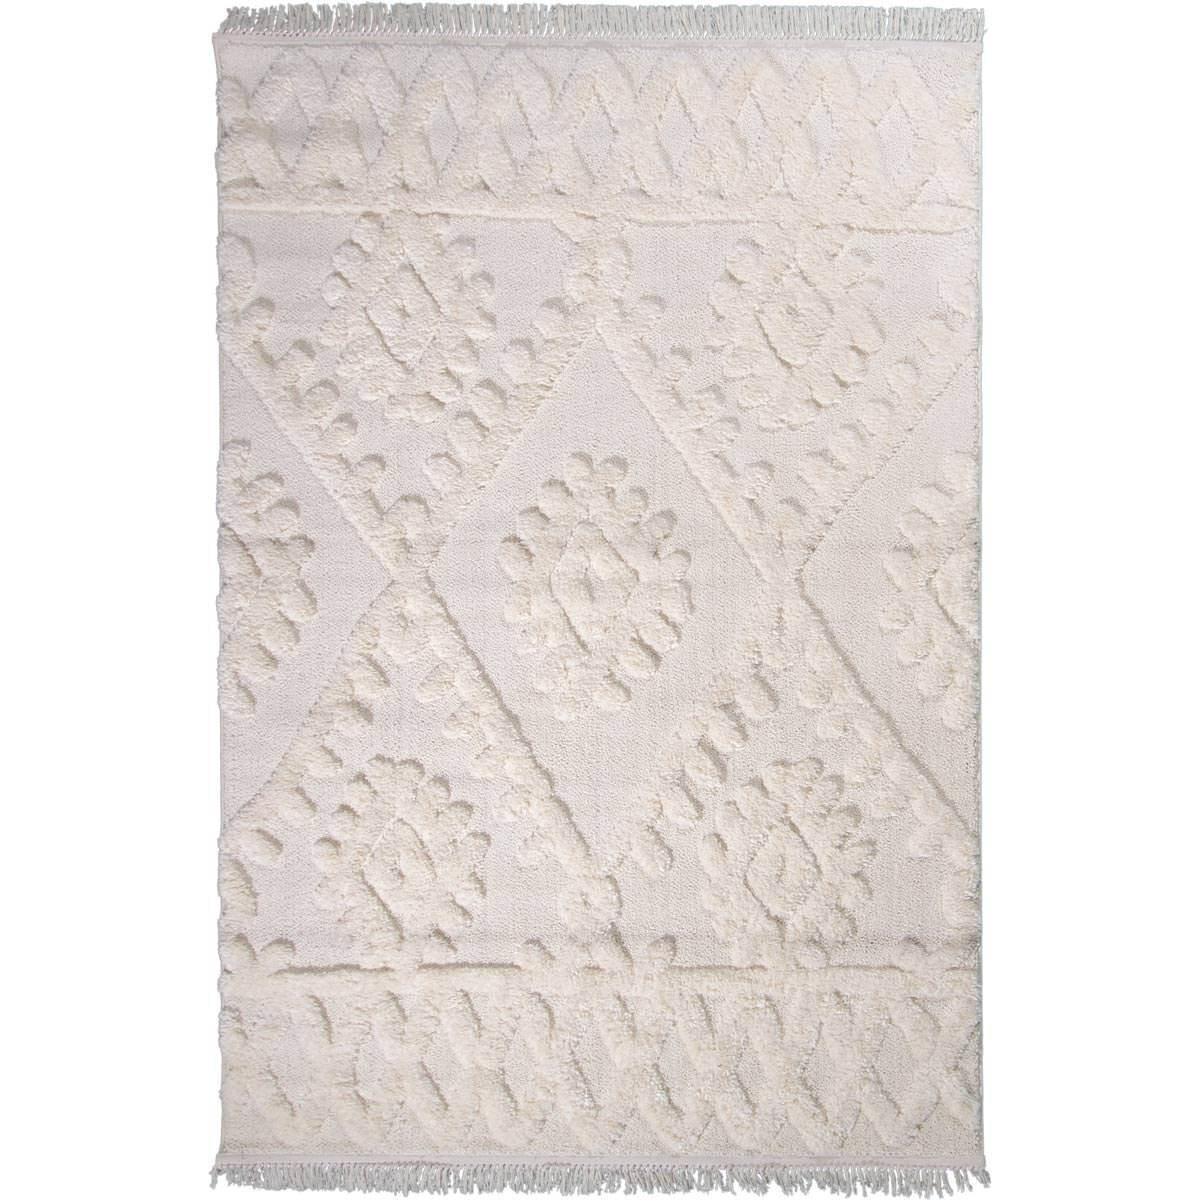 Atlas Rug 11 Cream Runner - Fringes 1